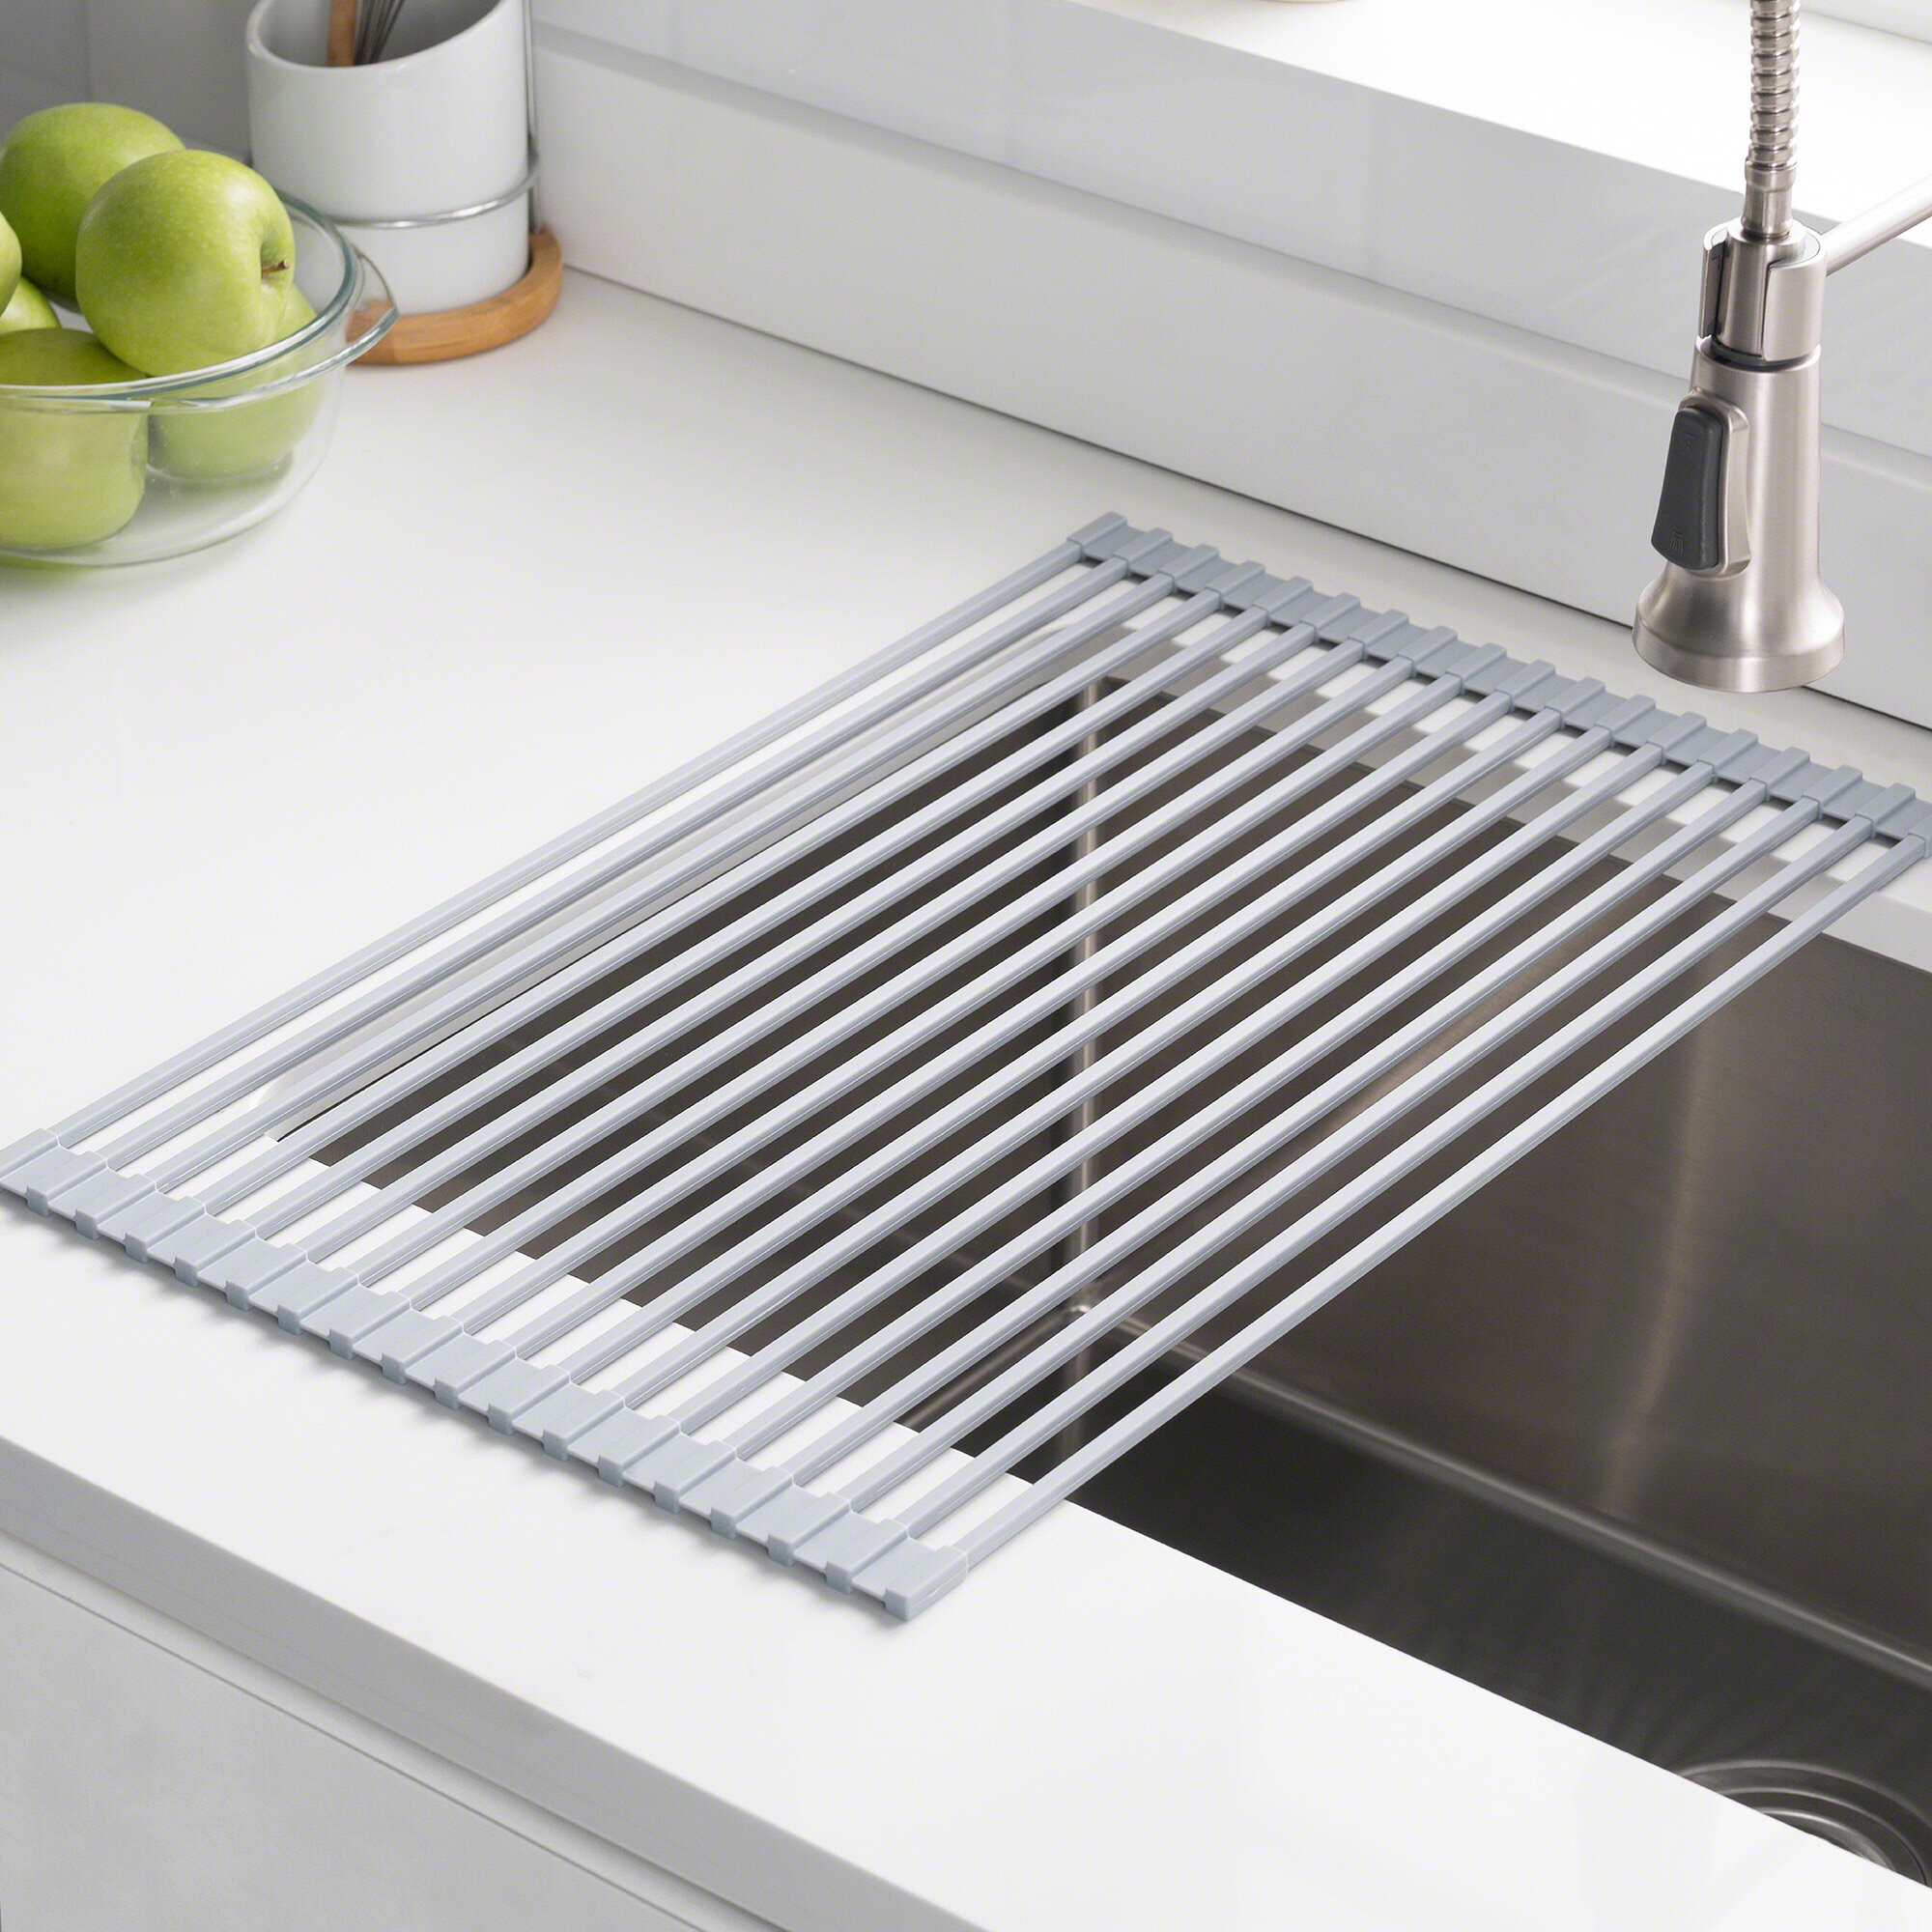 Krm 10grey Kraus Silicone Coated Stainless Steel Over The Sink Multipurpose Roll Up Dish Rack Reviews Wayfair